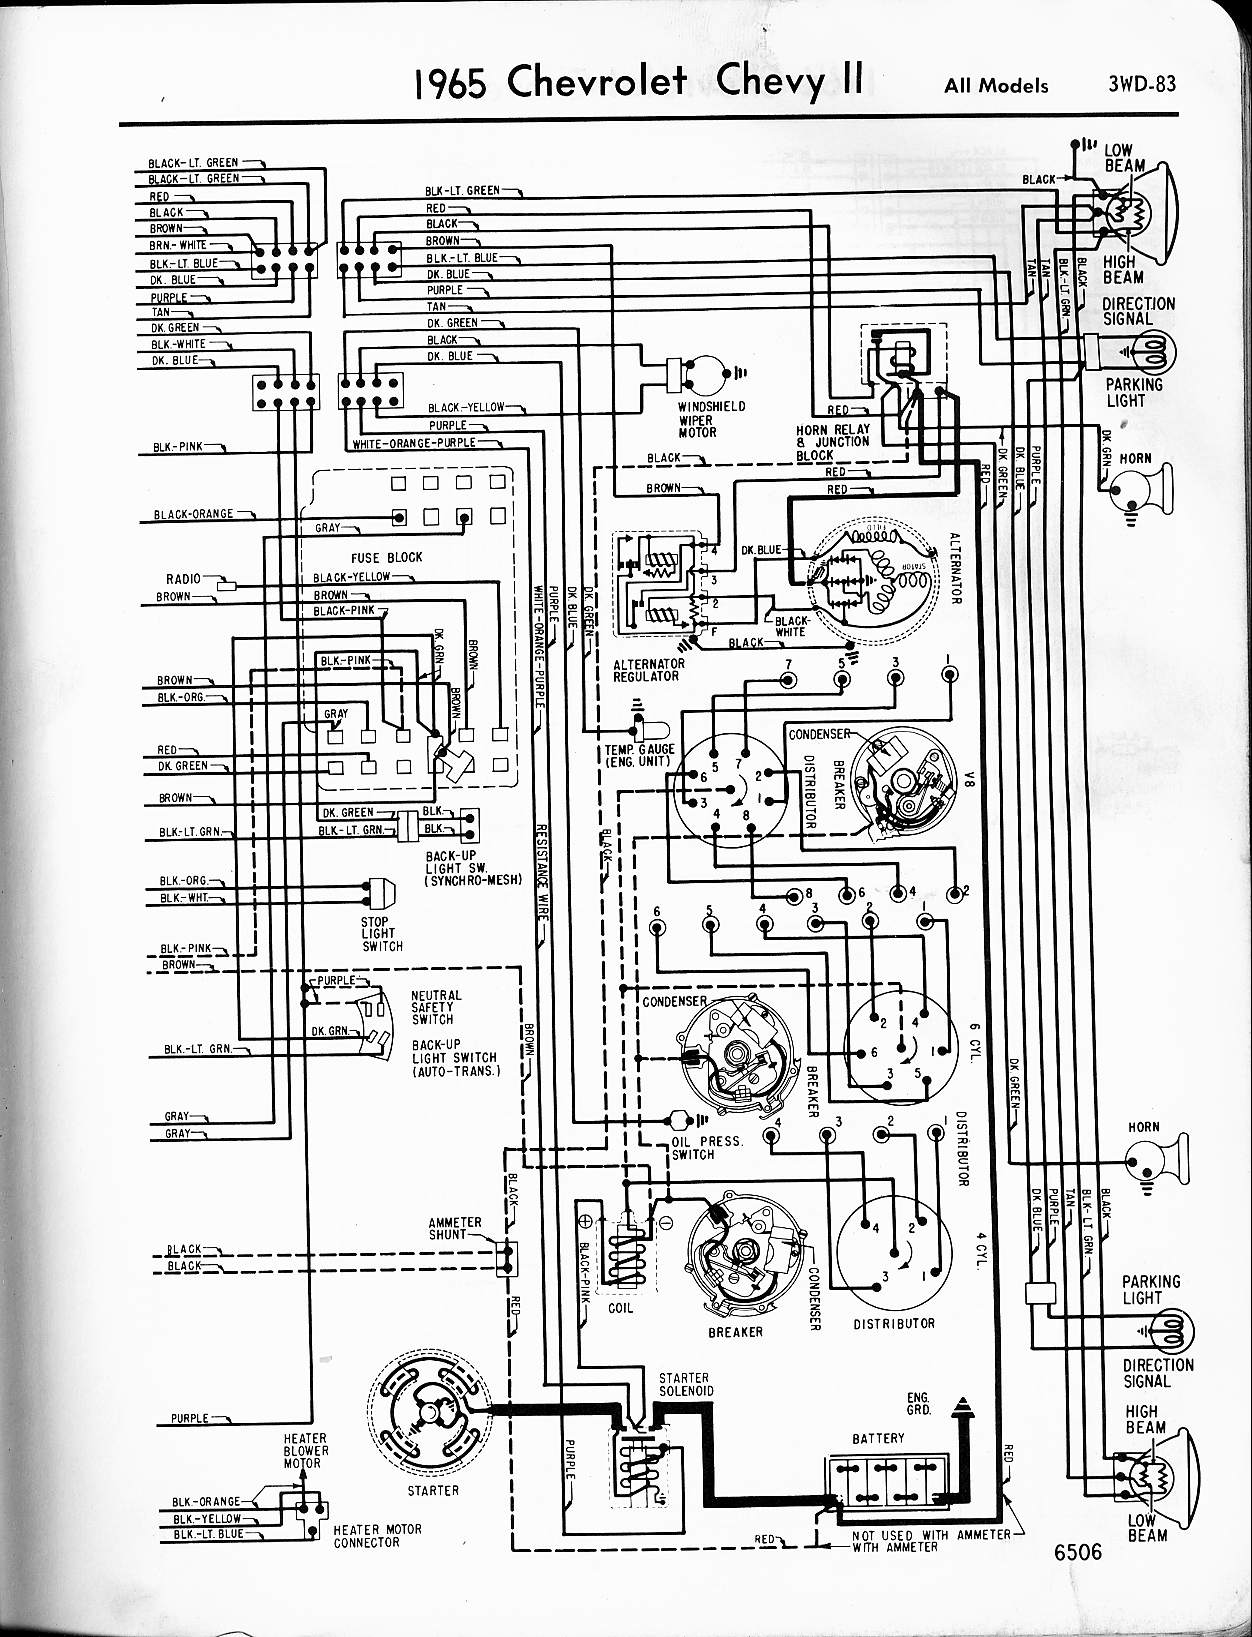 MWireChev65_3WD 083 chevy diagrams 1964 falcon wiring diagram at soozxer.org